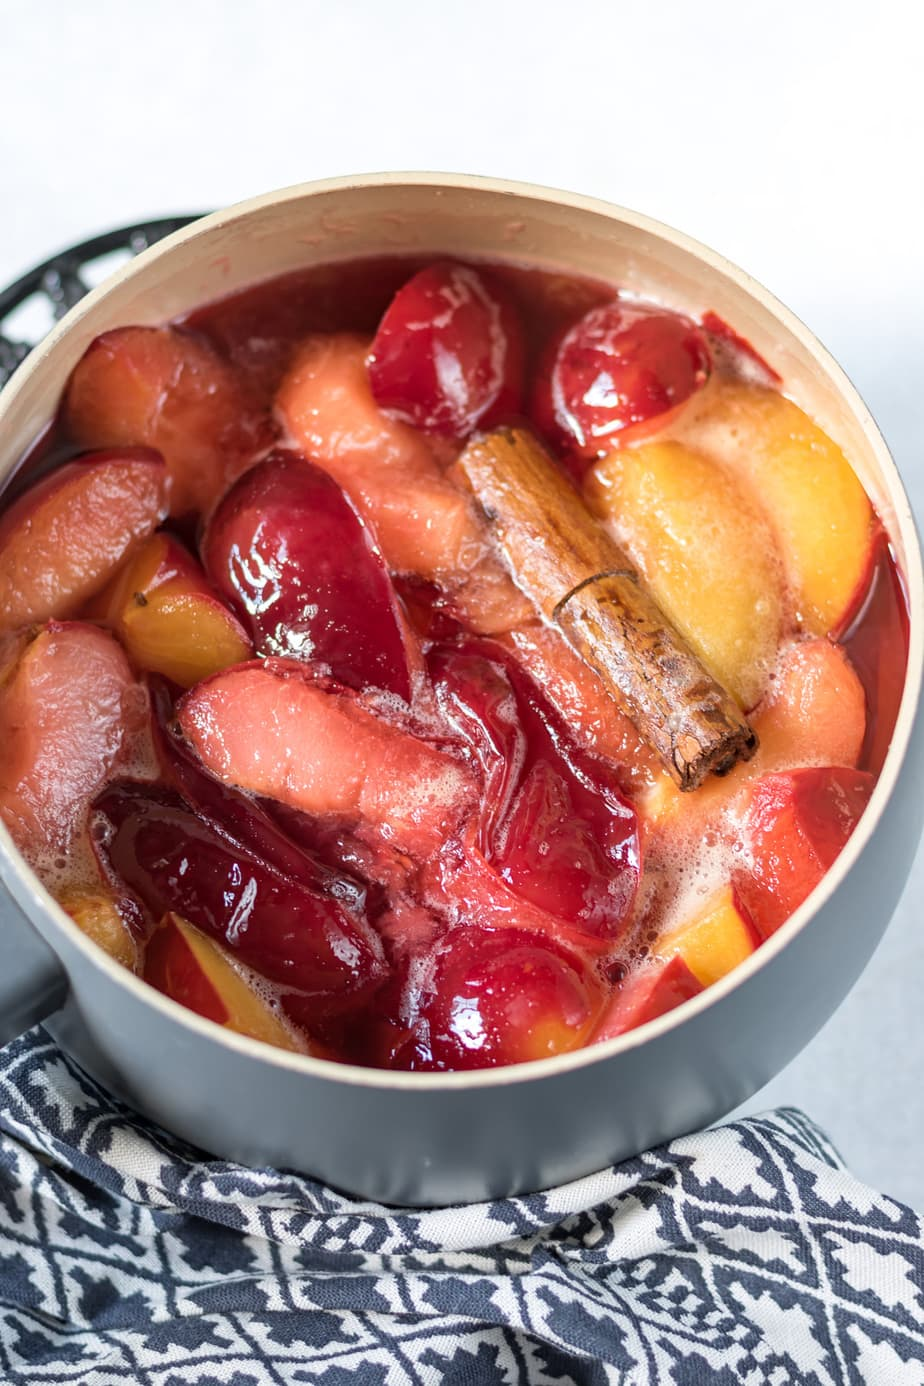 Pot of cooked plums with cinnamon stick.